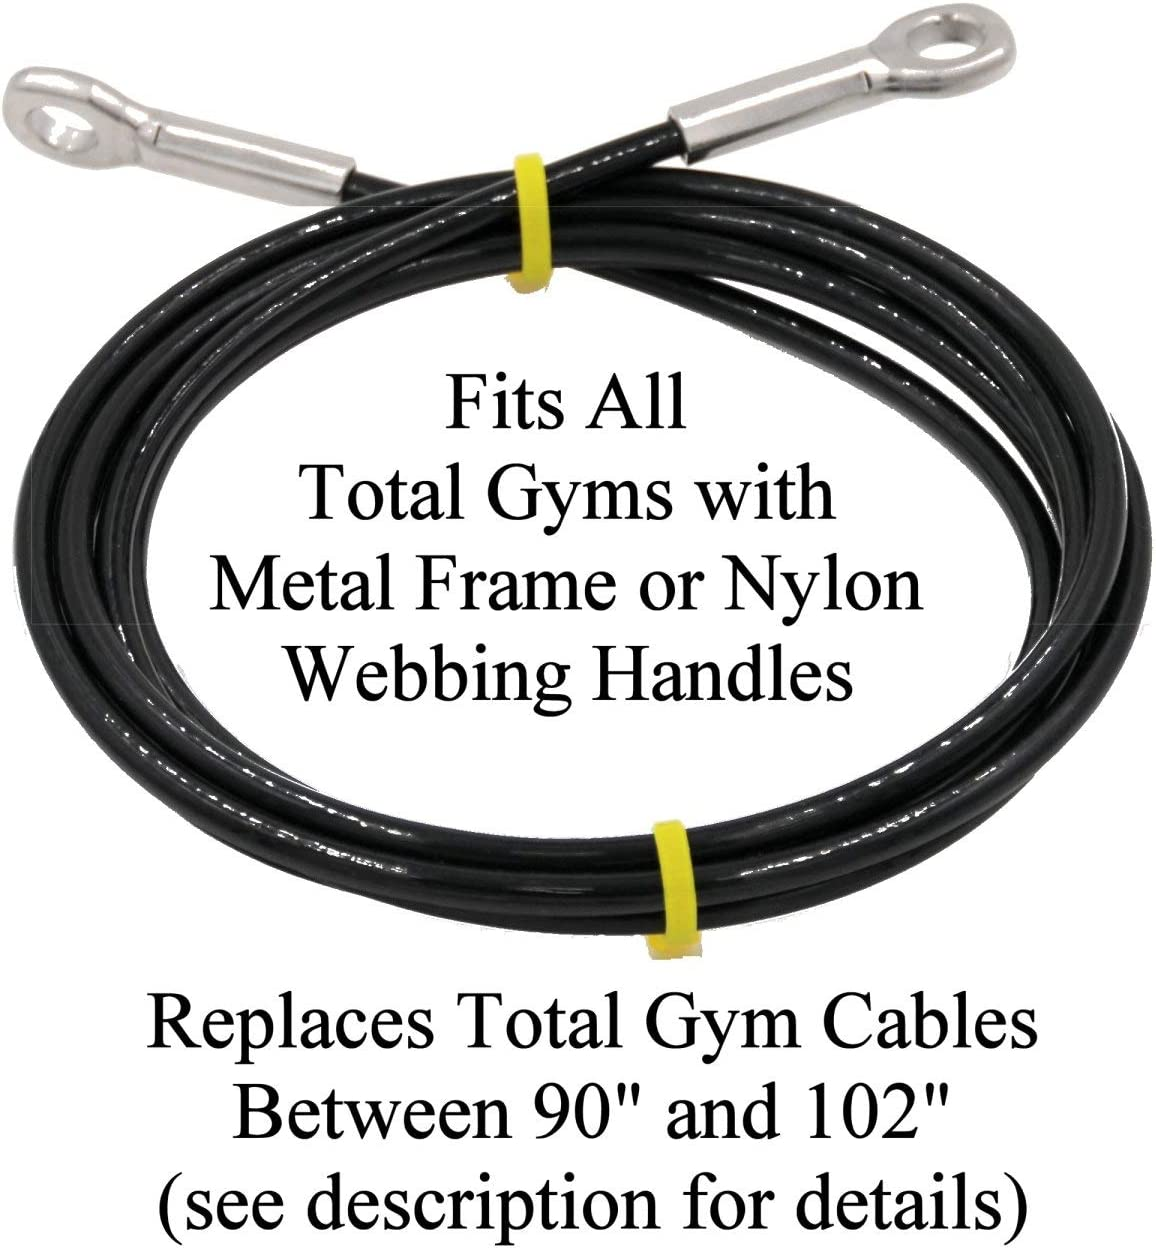 Made in USA Extremely Long Life Cable Lasts 5-10 Times Longer Than Other Cables ONLY Fits All Total Gyms with Metal Frame or Nylon Webb Handles. Read Product Description About Length